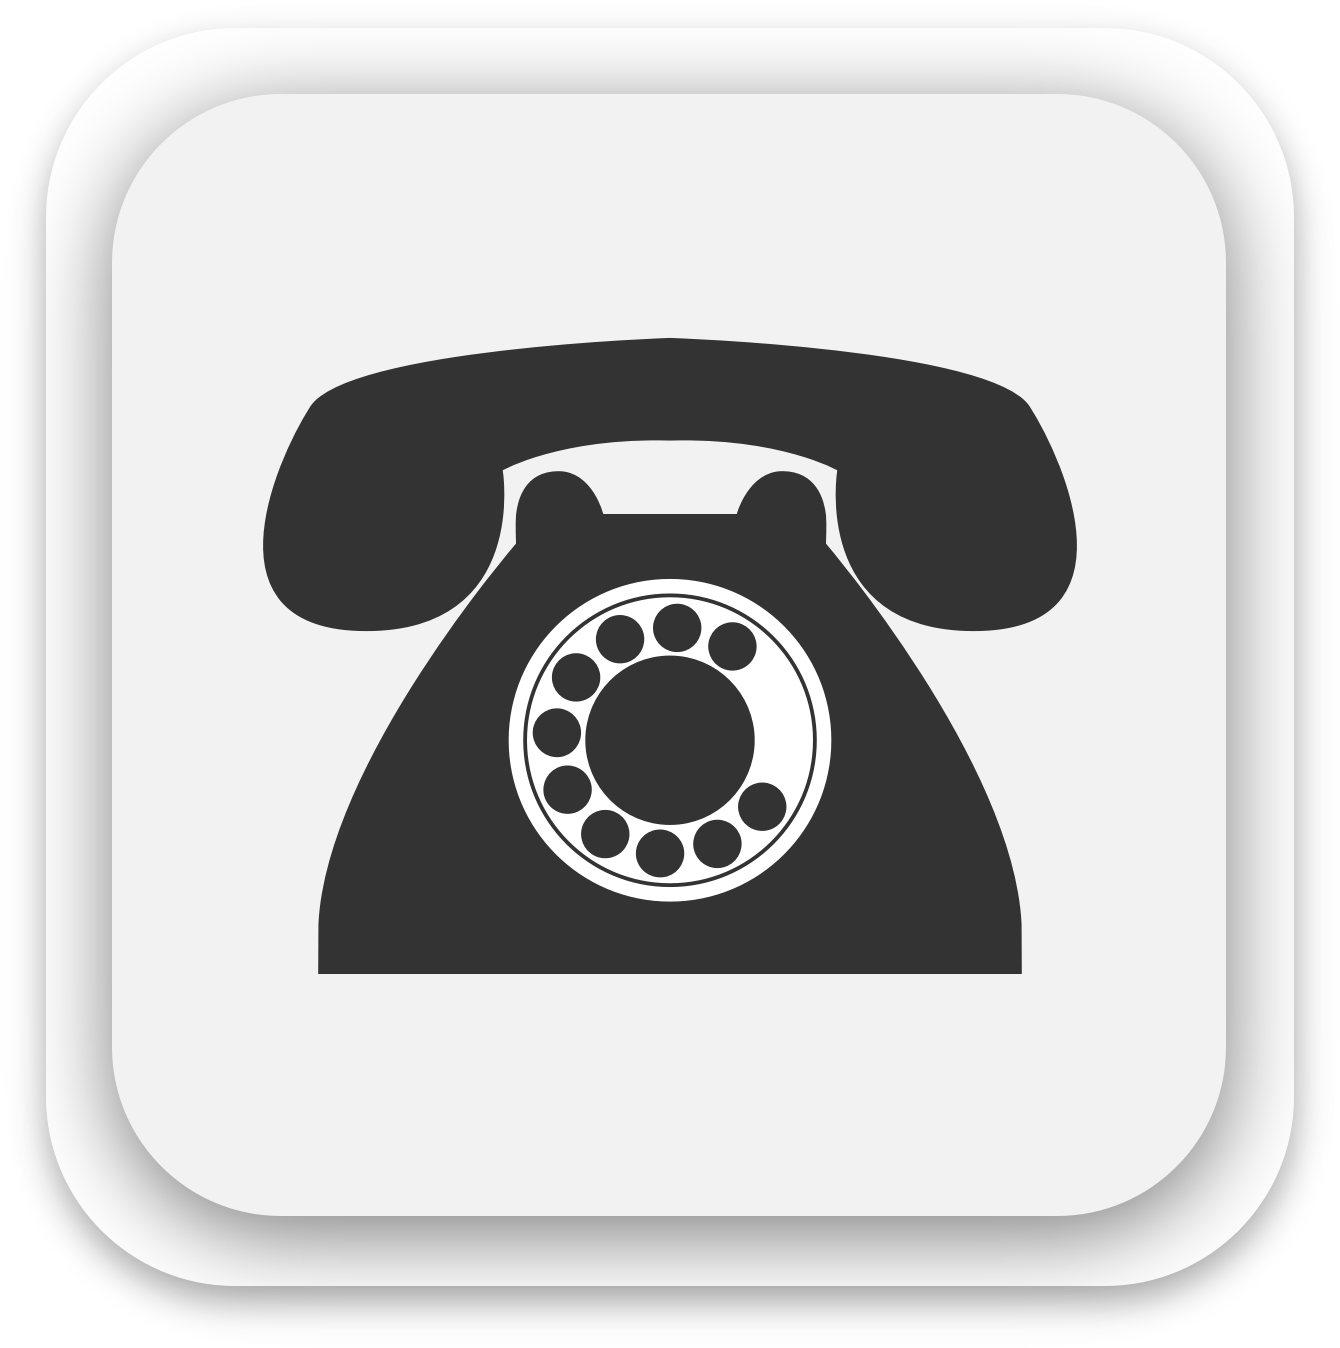 Telephone icon by GoodFreeArt